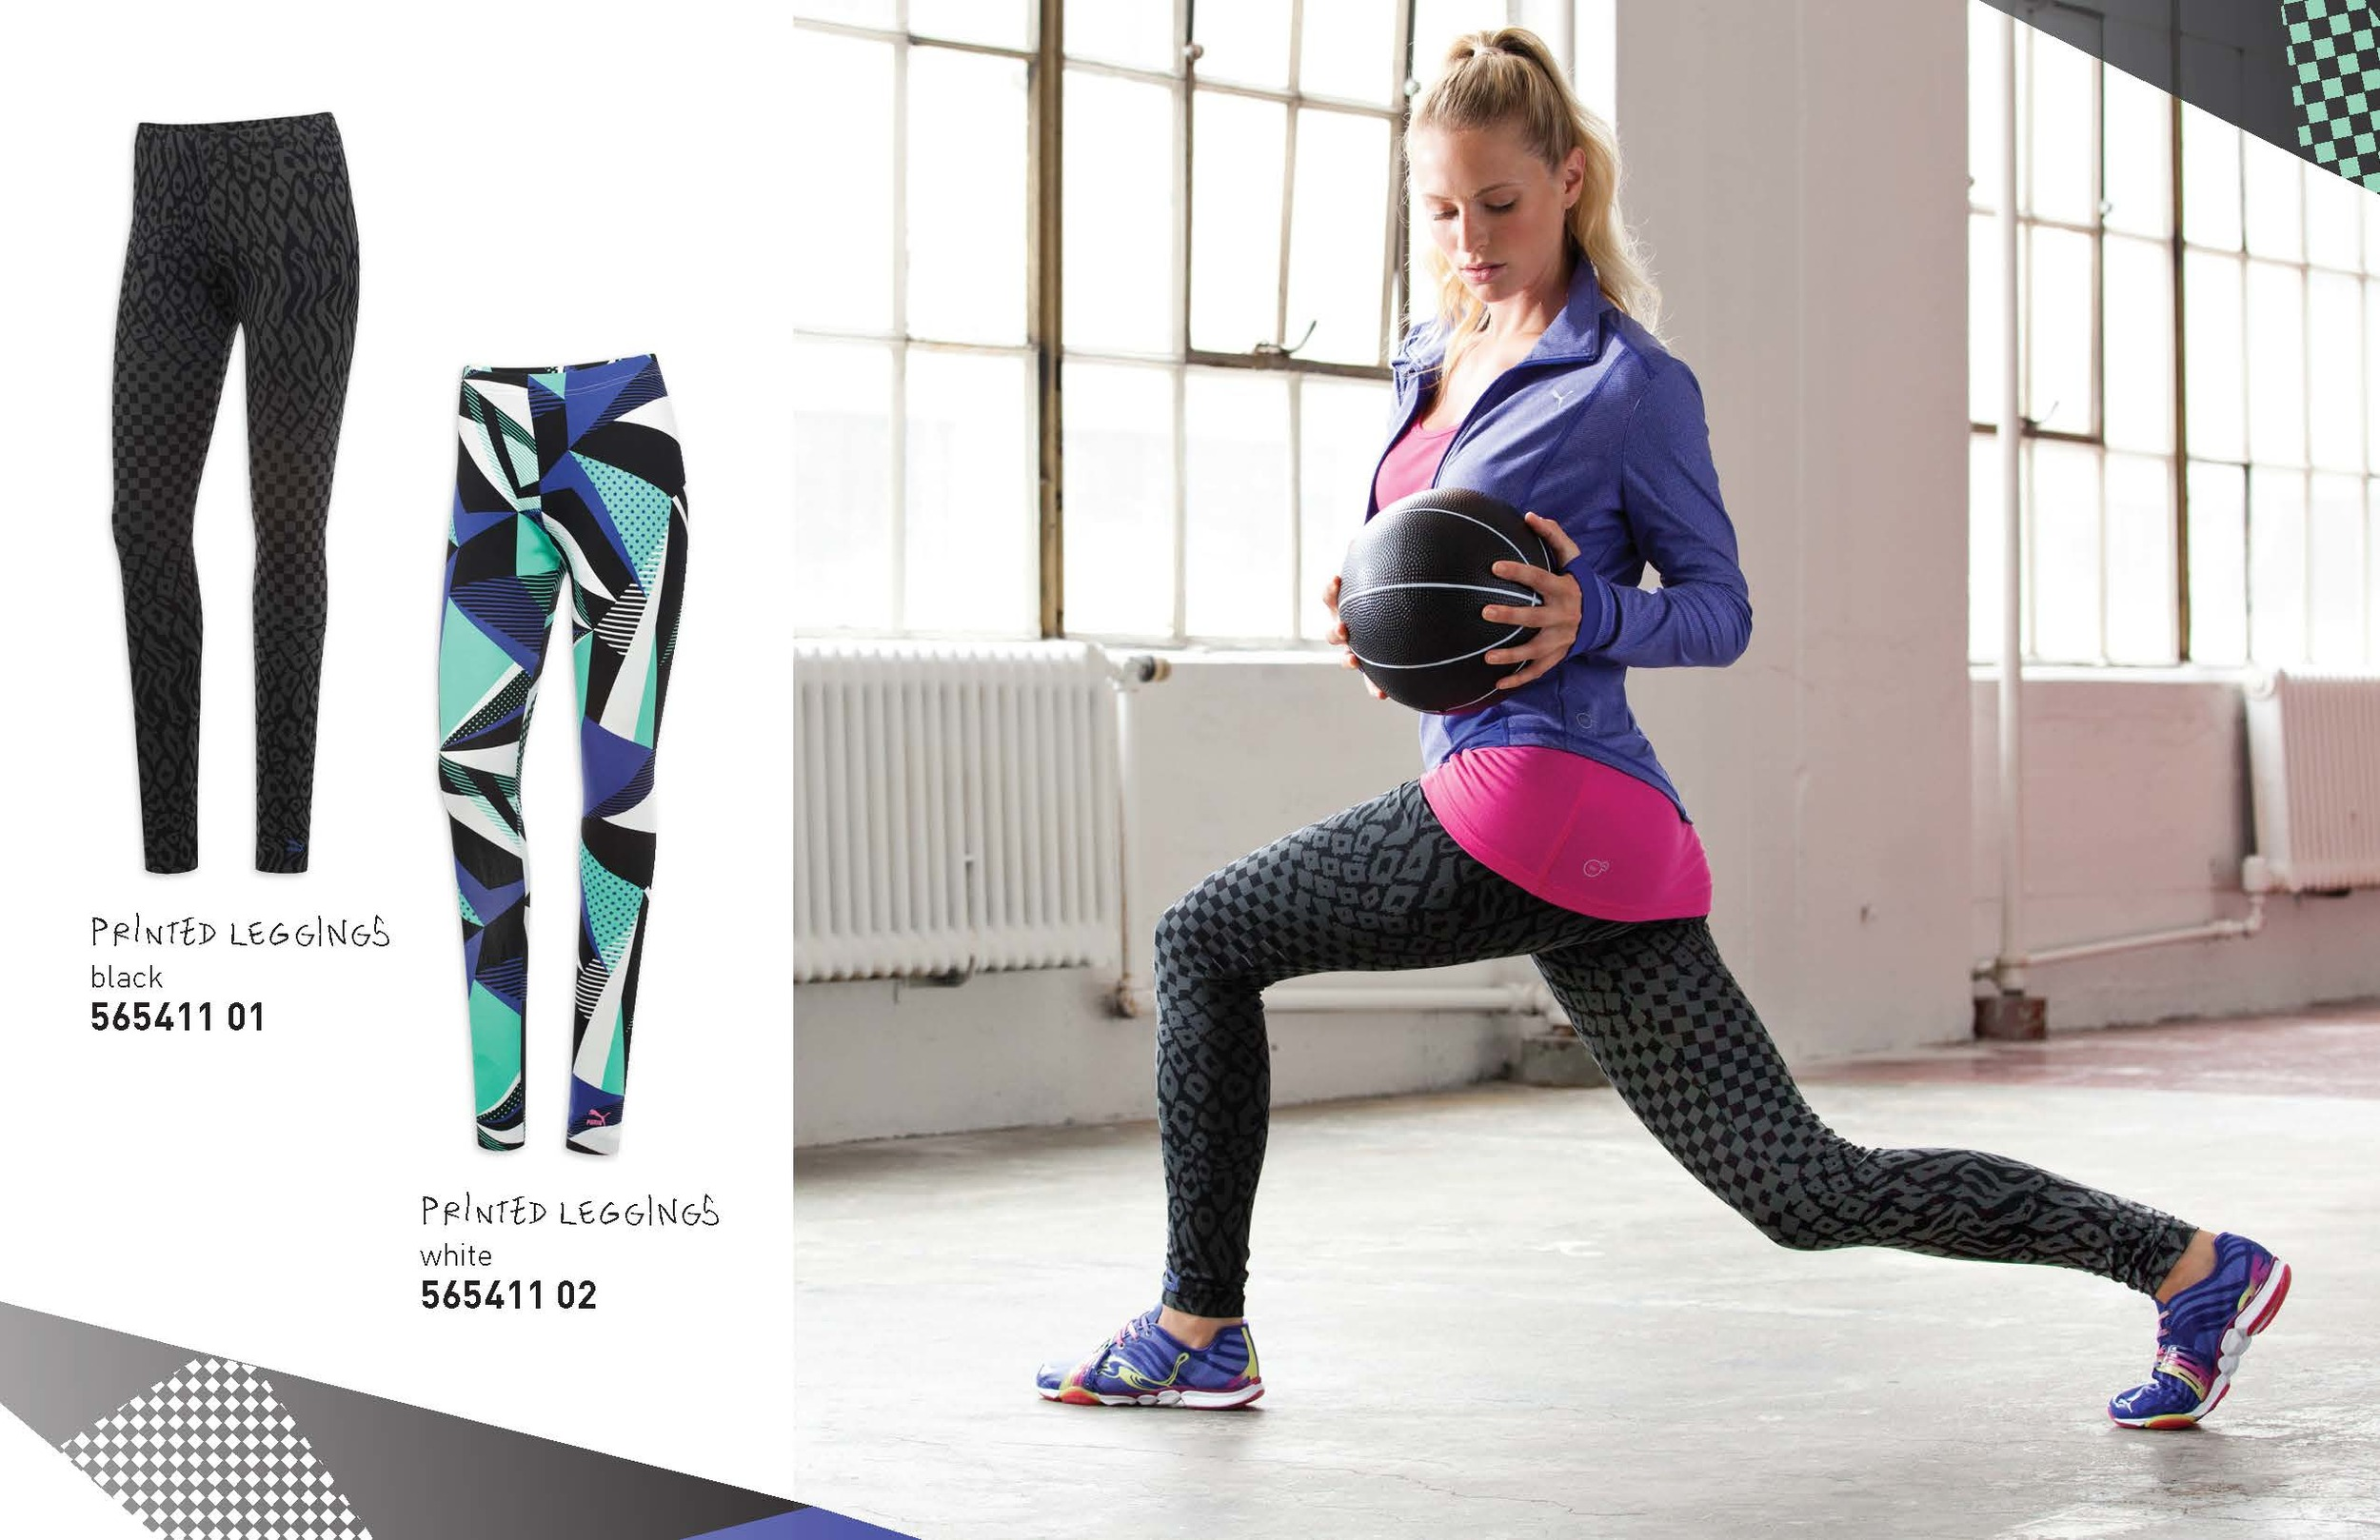 PUMA_booklet_7-30-13_HIRES_view_Page_15.jpg